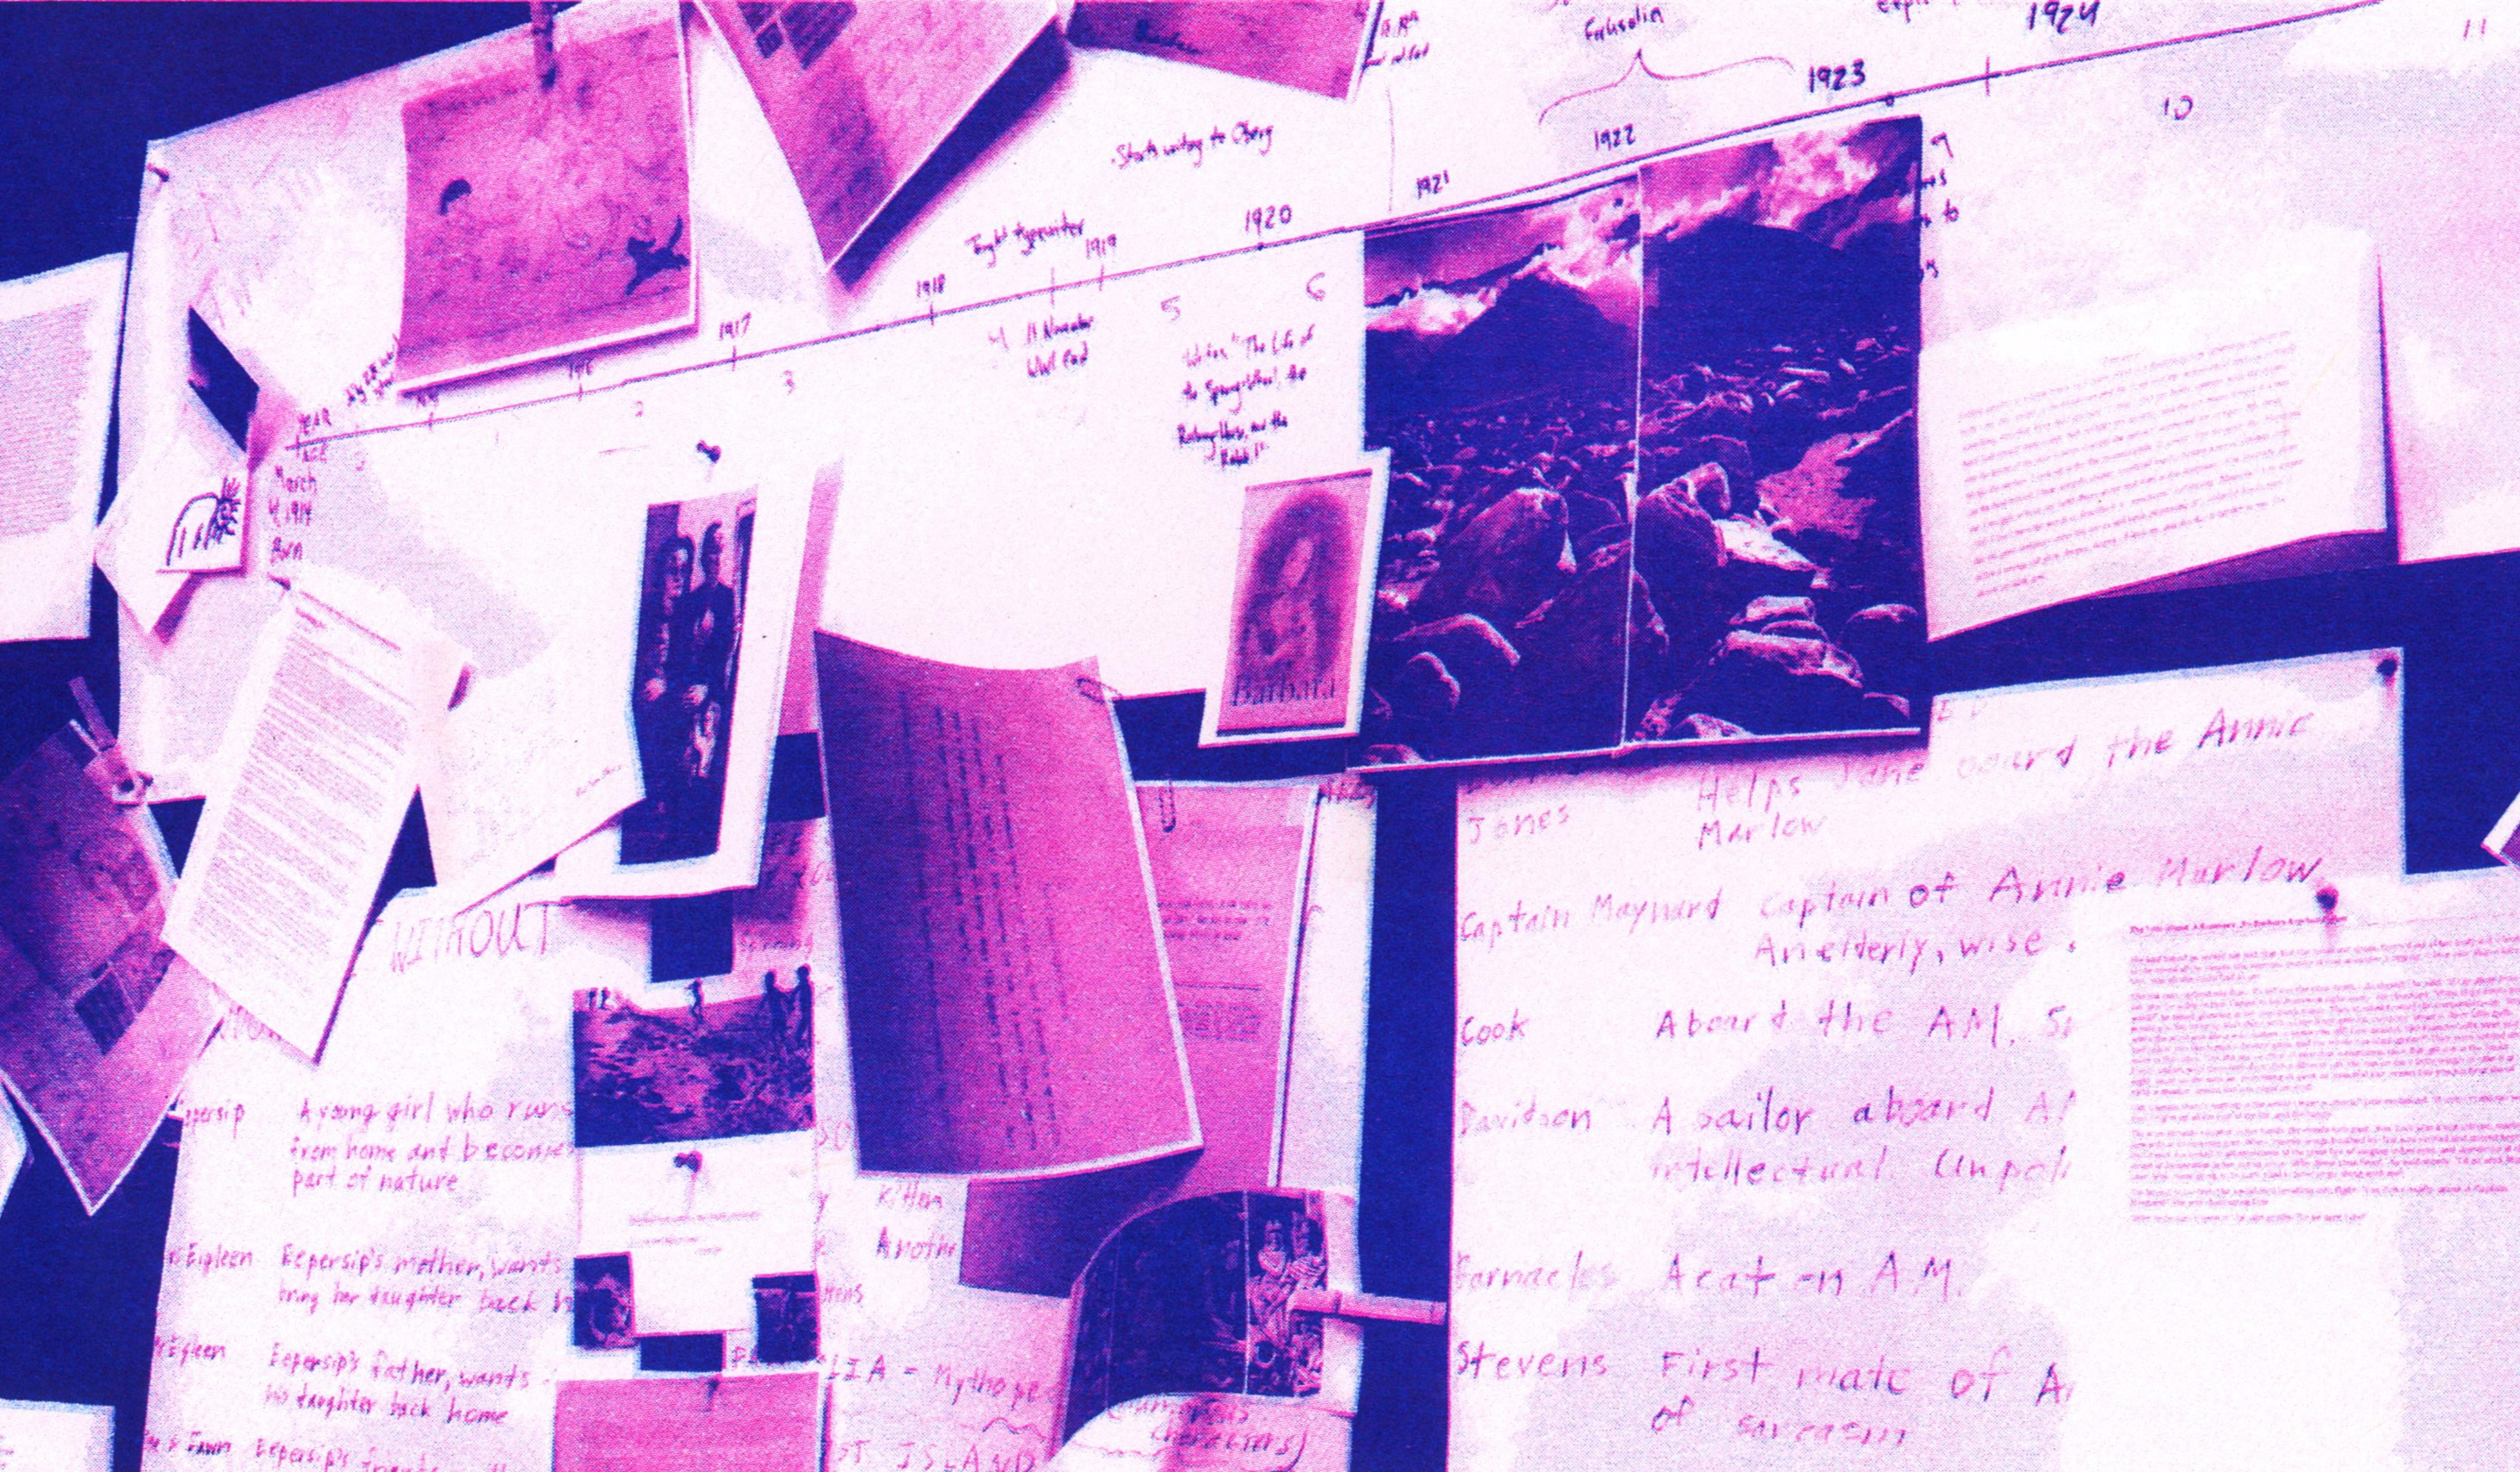 various papers with writing on wall in pink hue